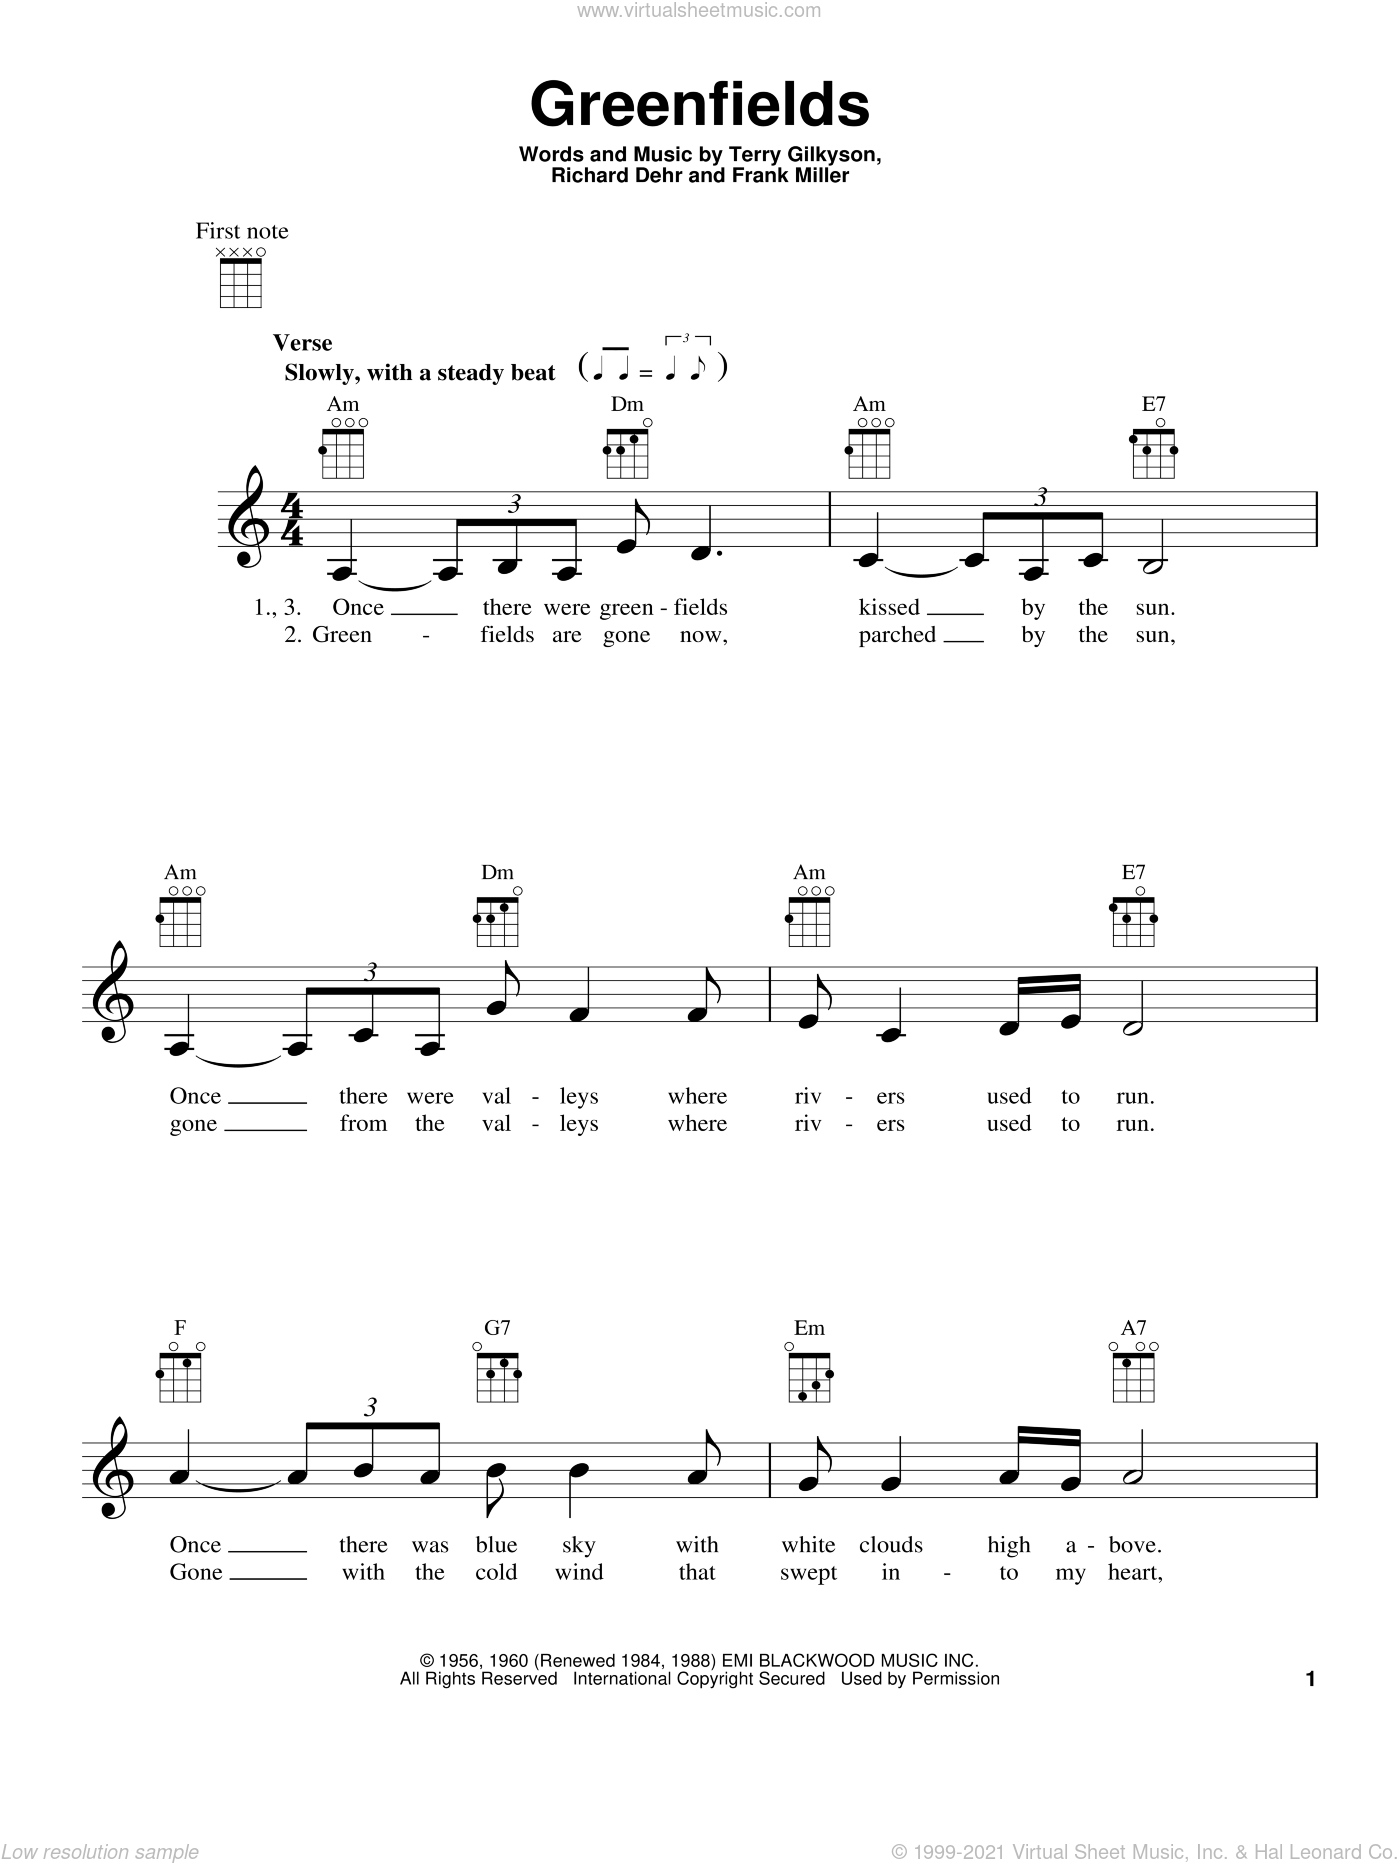 Greenfields sheet music for ukulele by Terry Gilkyson